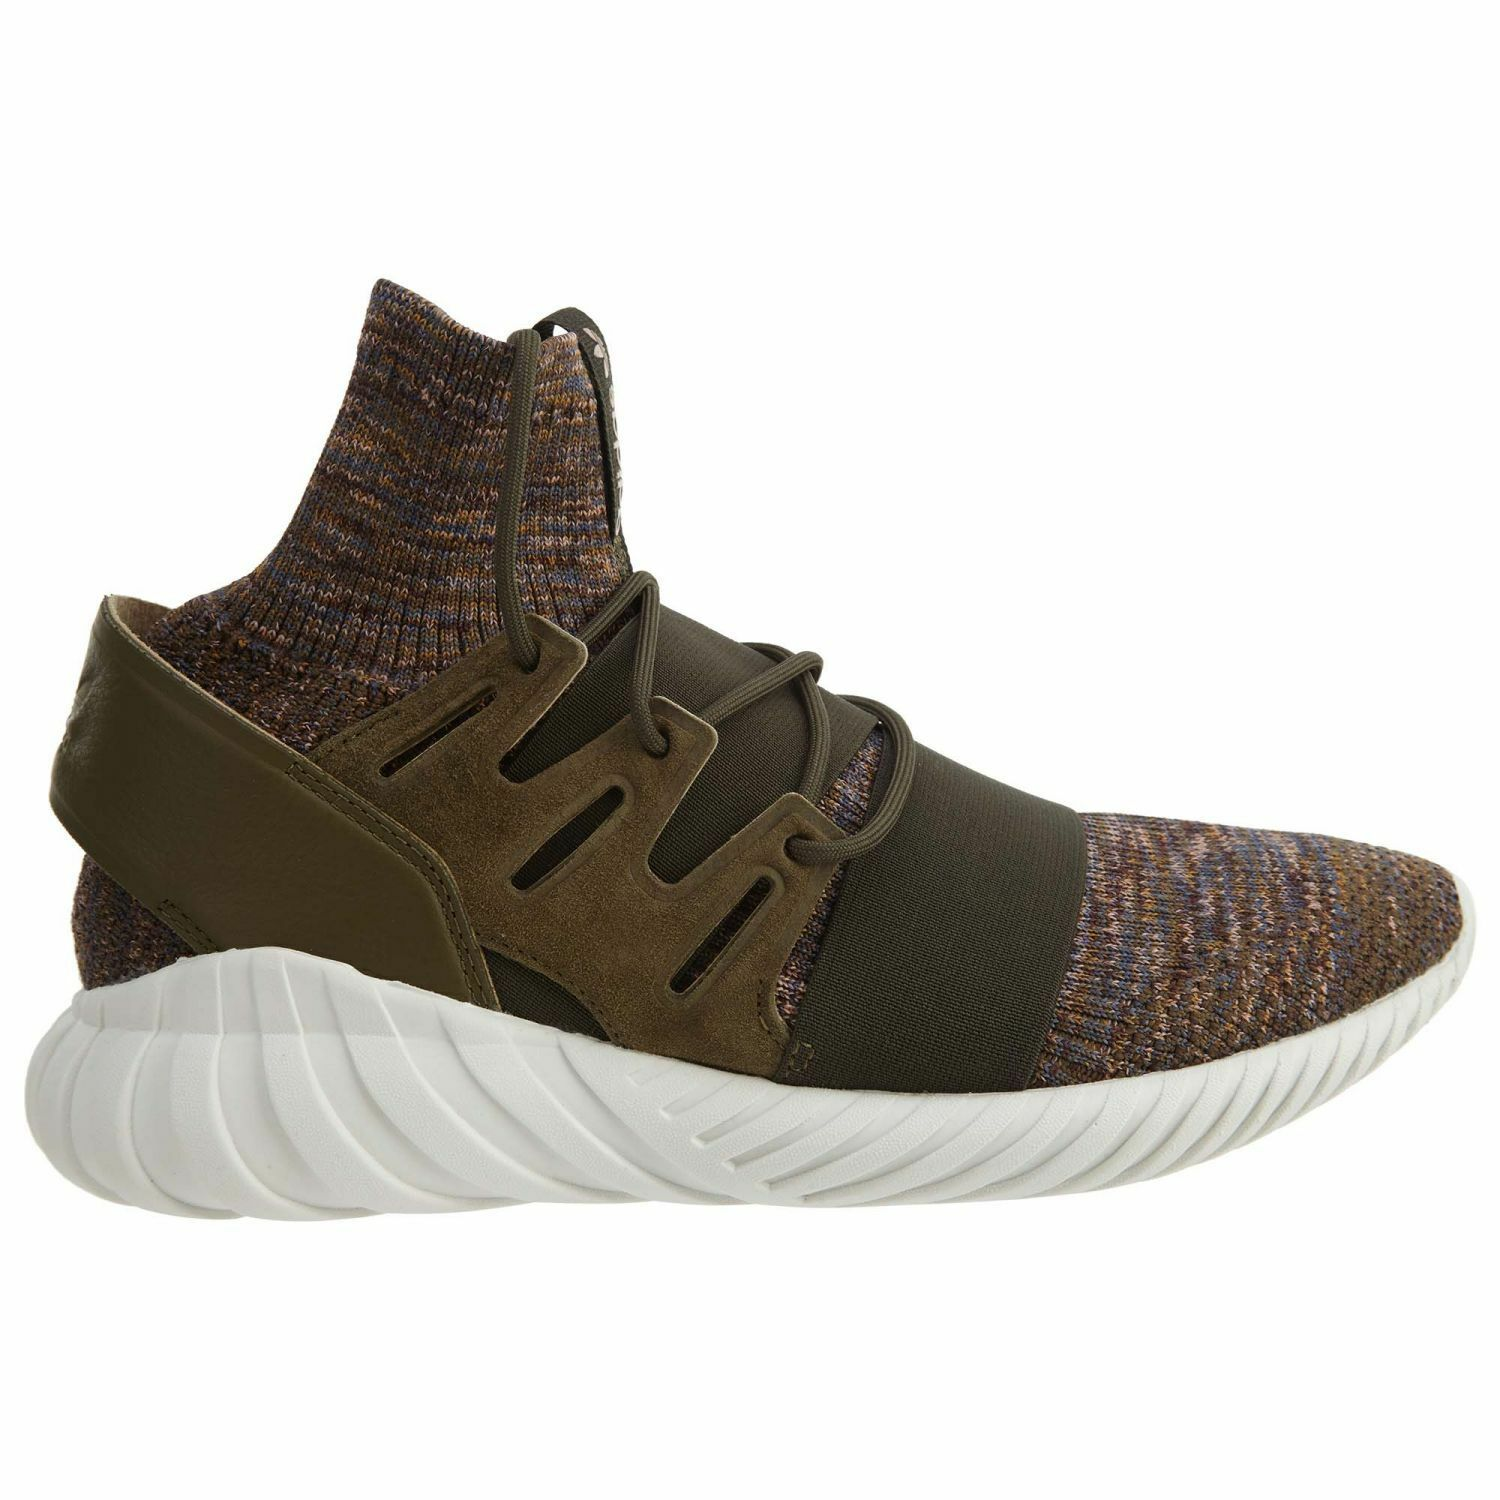 Adidas Tubular Doom PK Mens BY3551 Trace Olive Brown Primeknit shoes Size 9.5